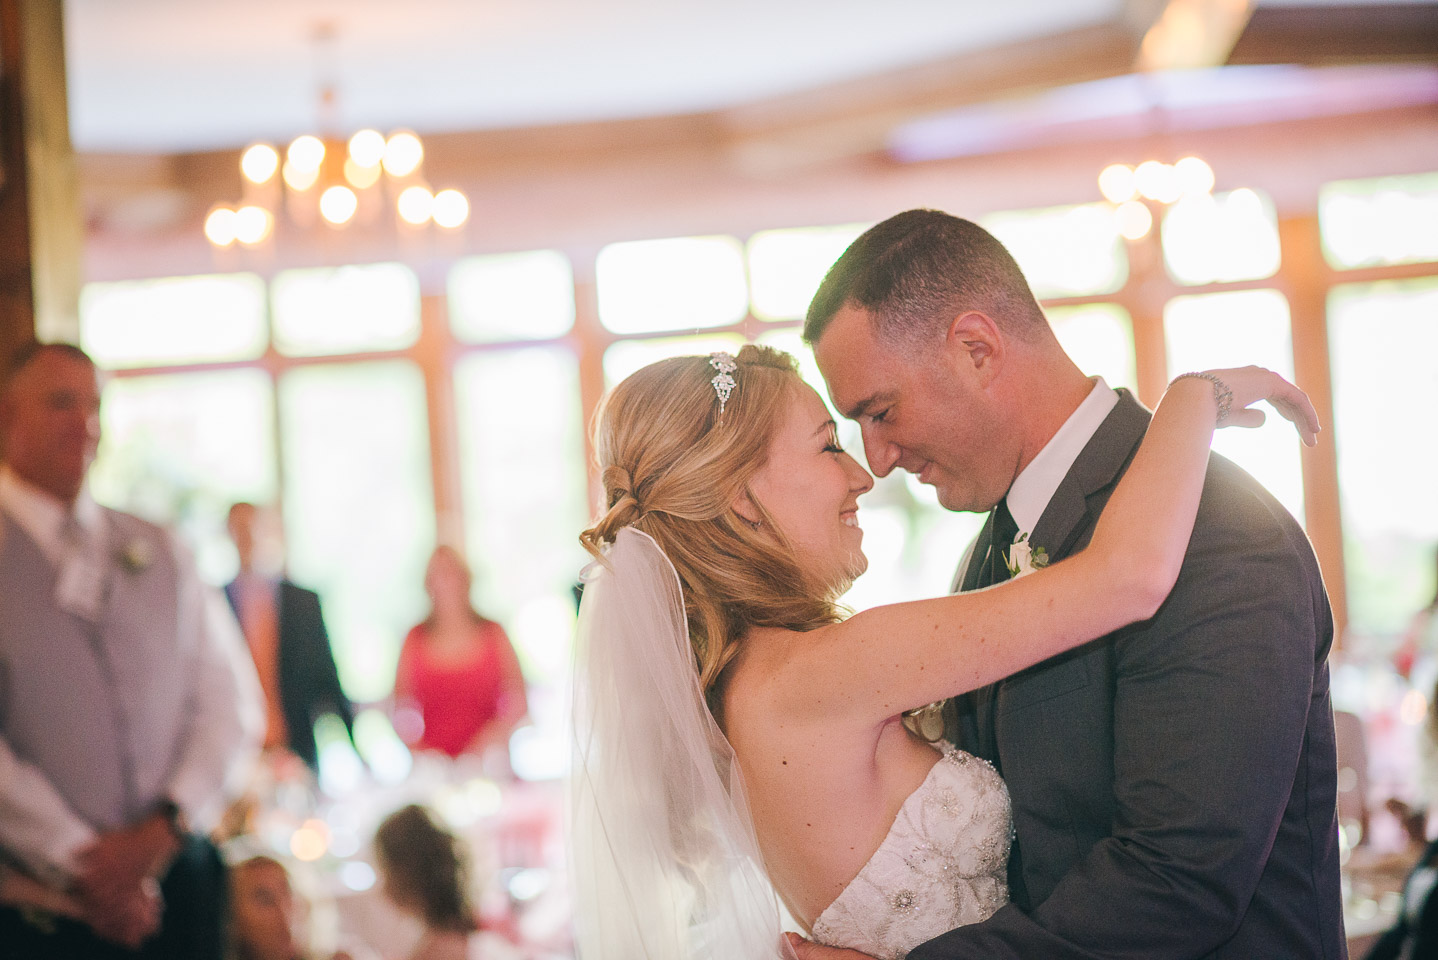 NH Wedding Photography: first dance as newlyweds at BVI